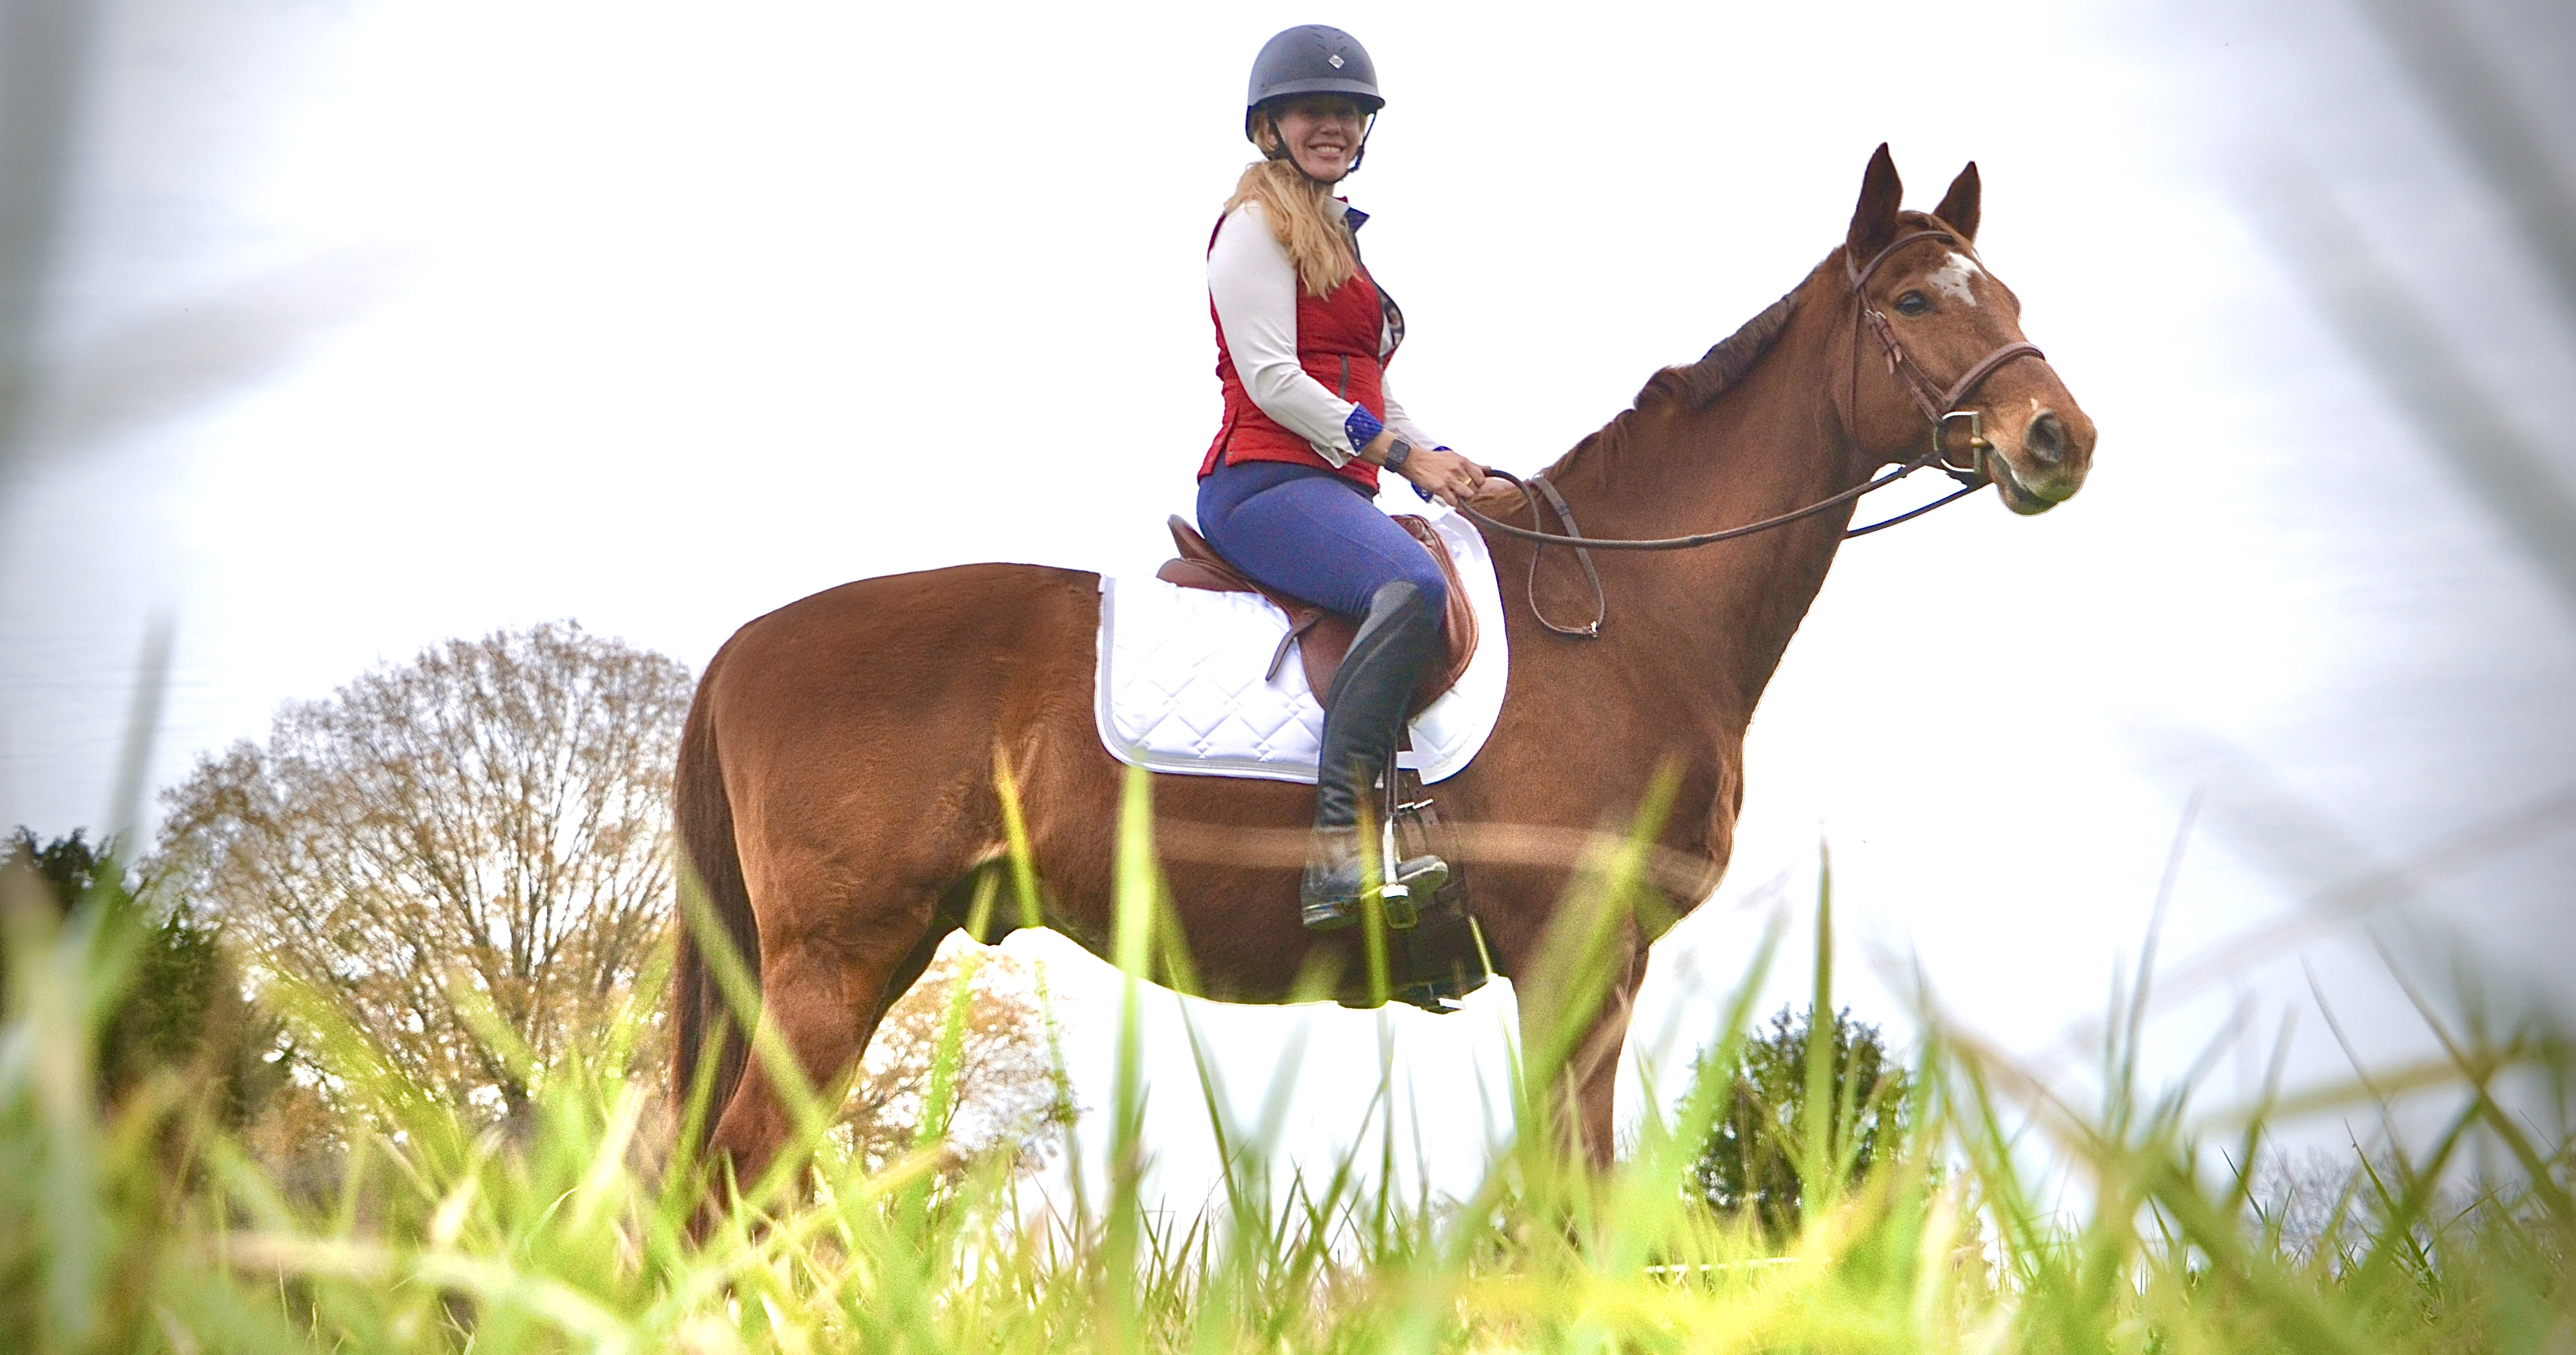 A photograph of me on Leroy, a large chestnut gelding, while he stands looking off into the distance.